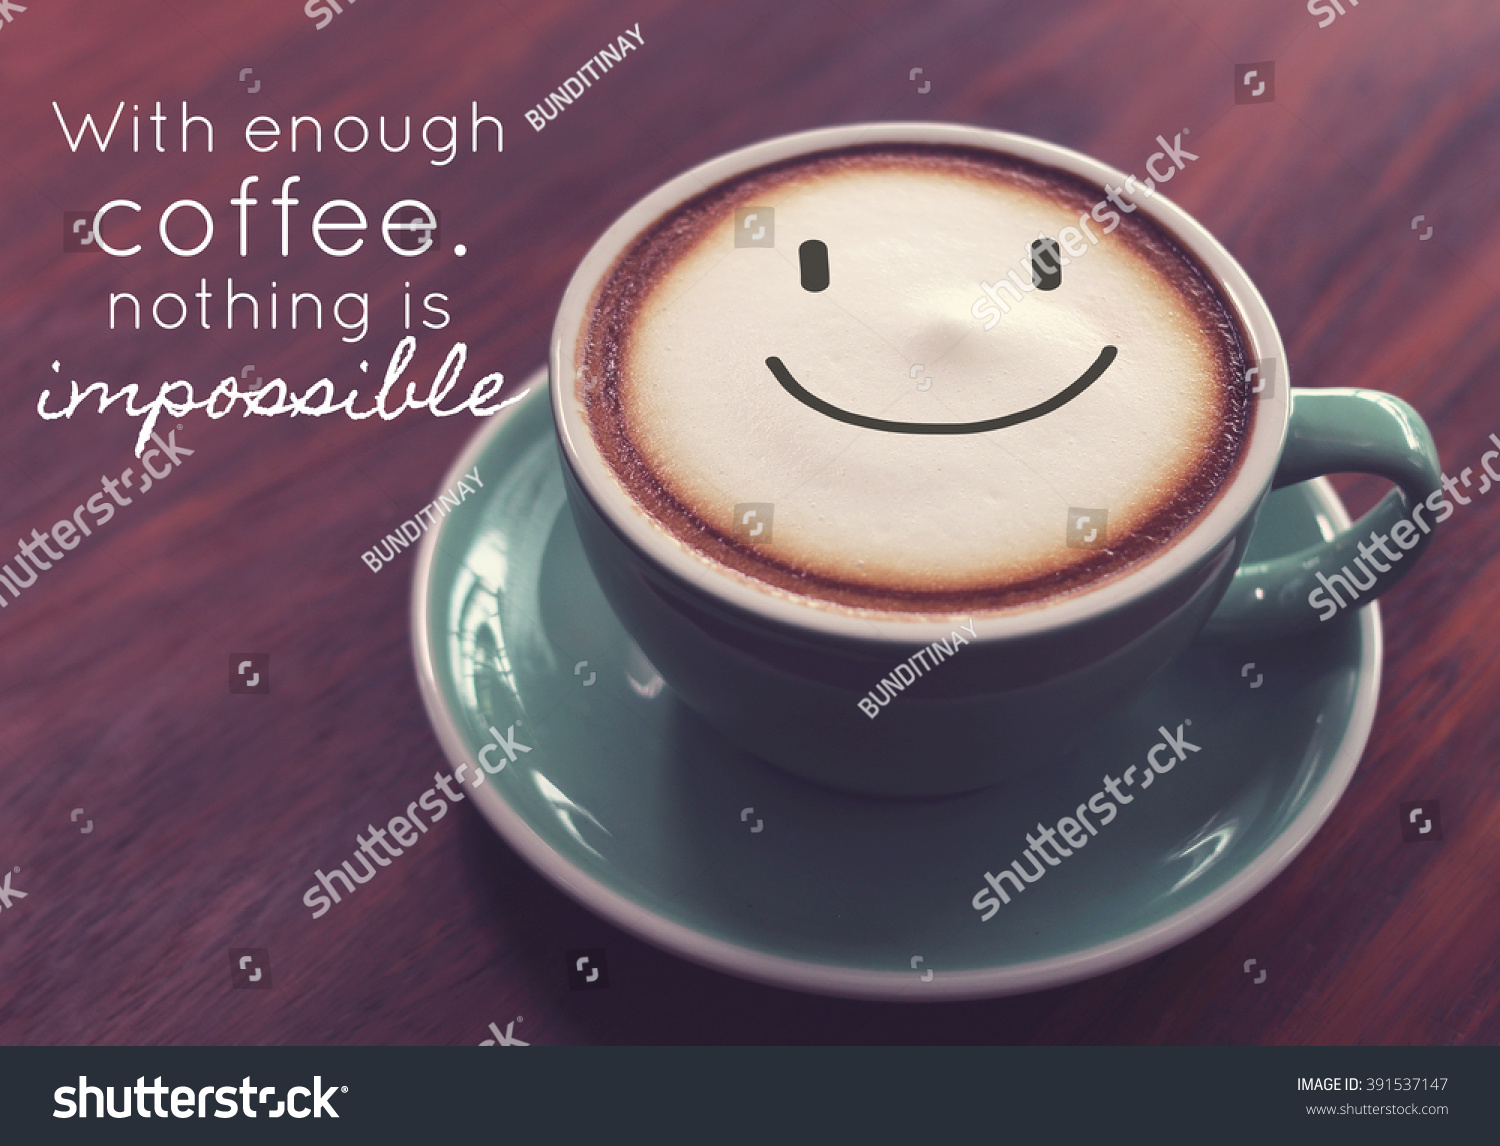 Charming Inspirational Quote On Coffee Cup Background With Vintage Filter Gallery